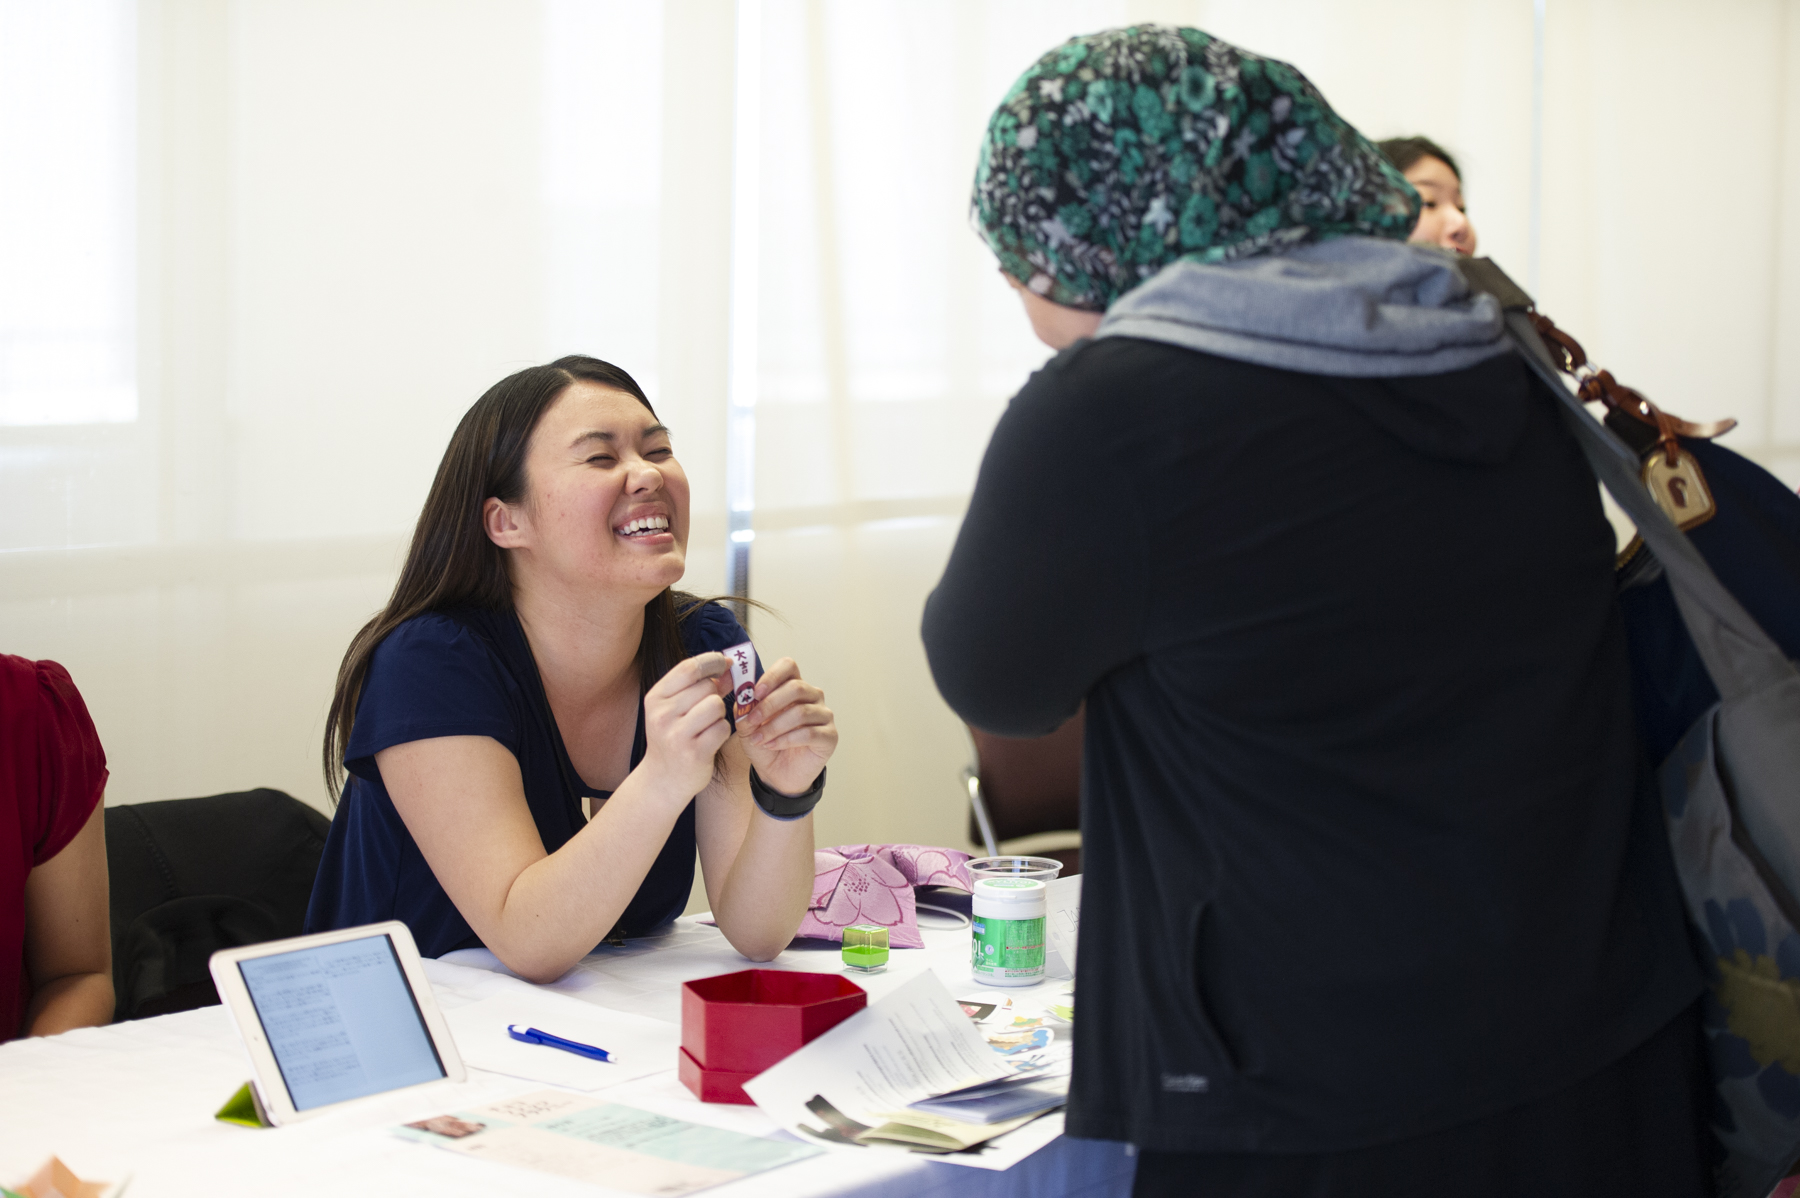 Student laughing, speaking with an attendee